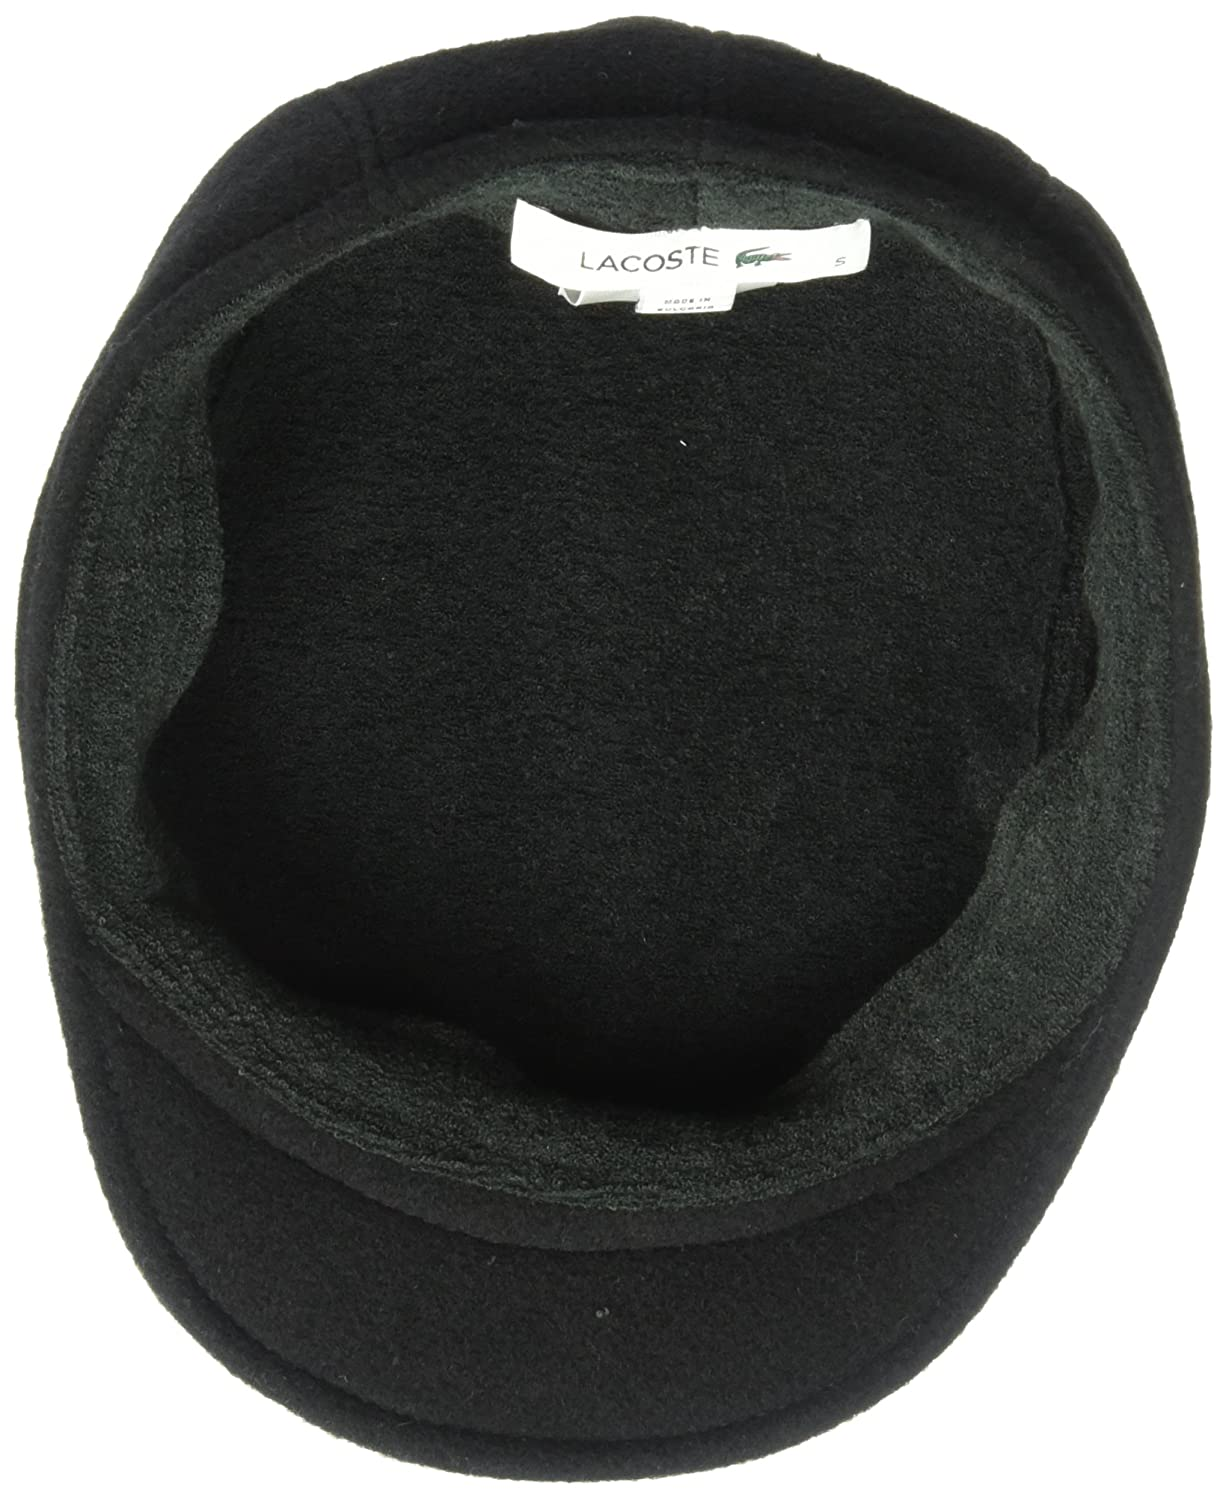 8e70727bc24 Lacoste Men s Wool Broadcloth Driver Cap at Amazon Men s Clothing store